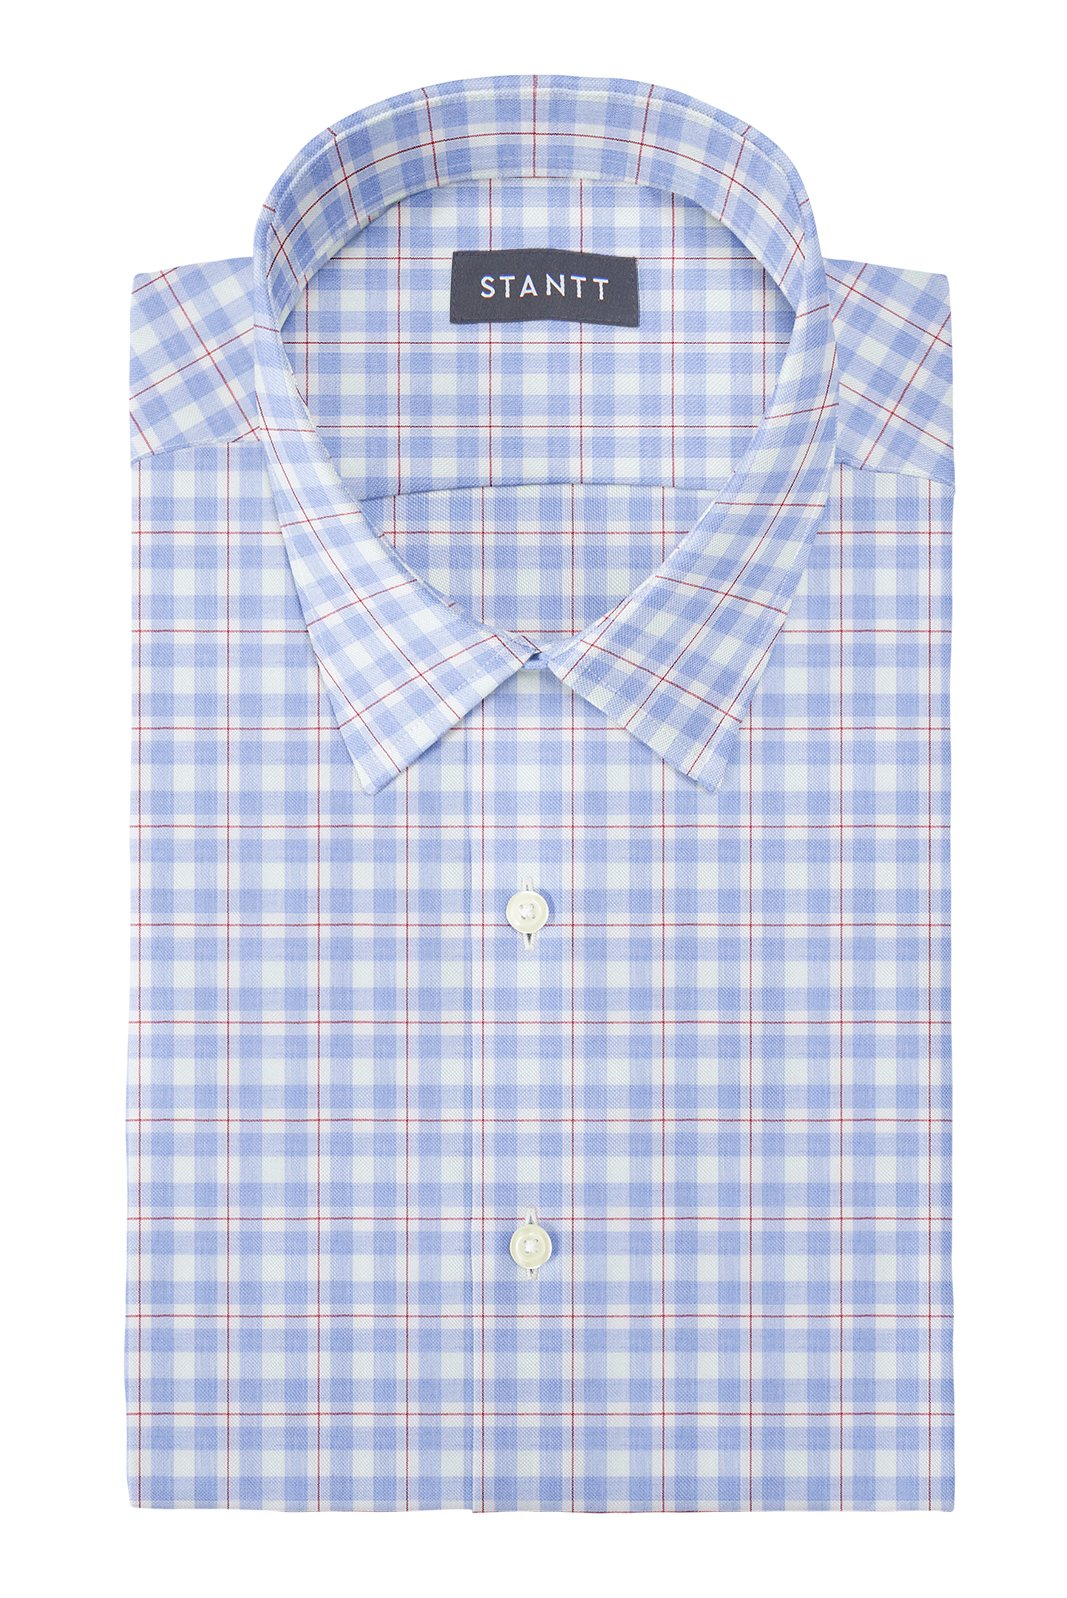 Light Blue and Red Windowpane: Semi-Spread Collar, French Cuff